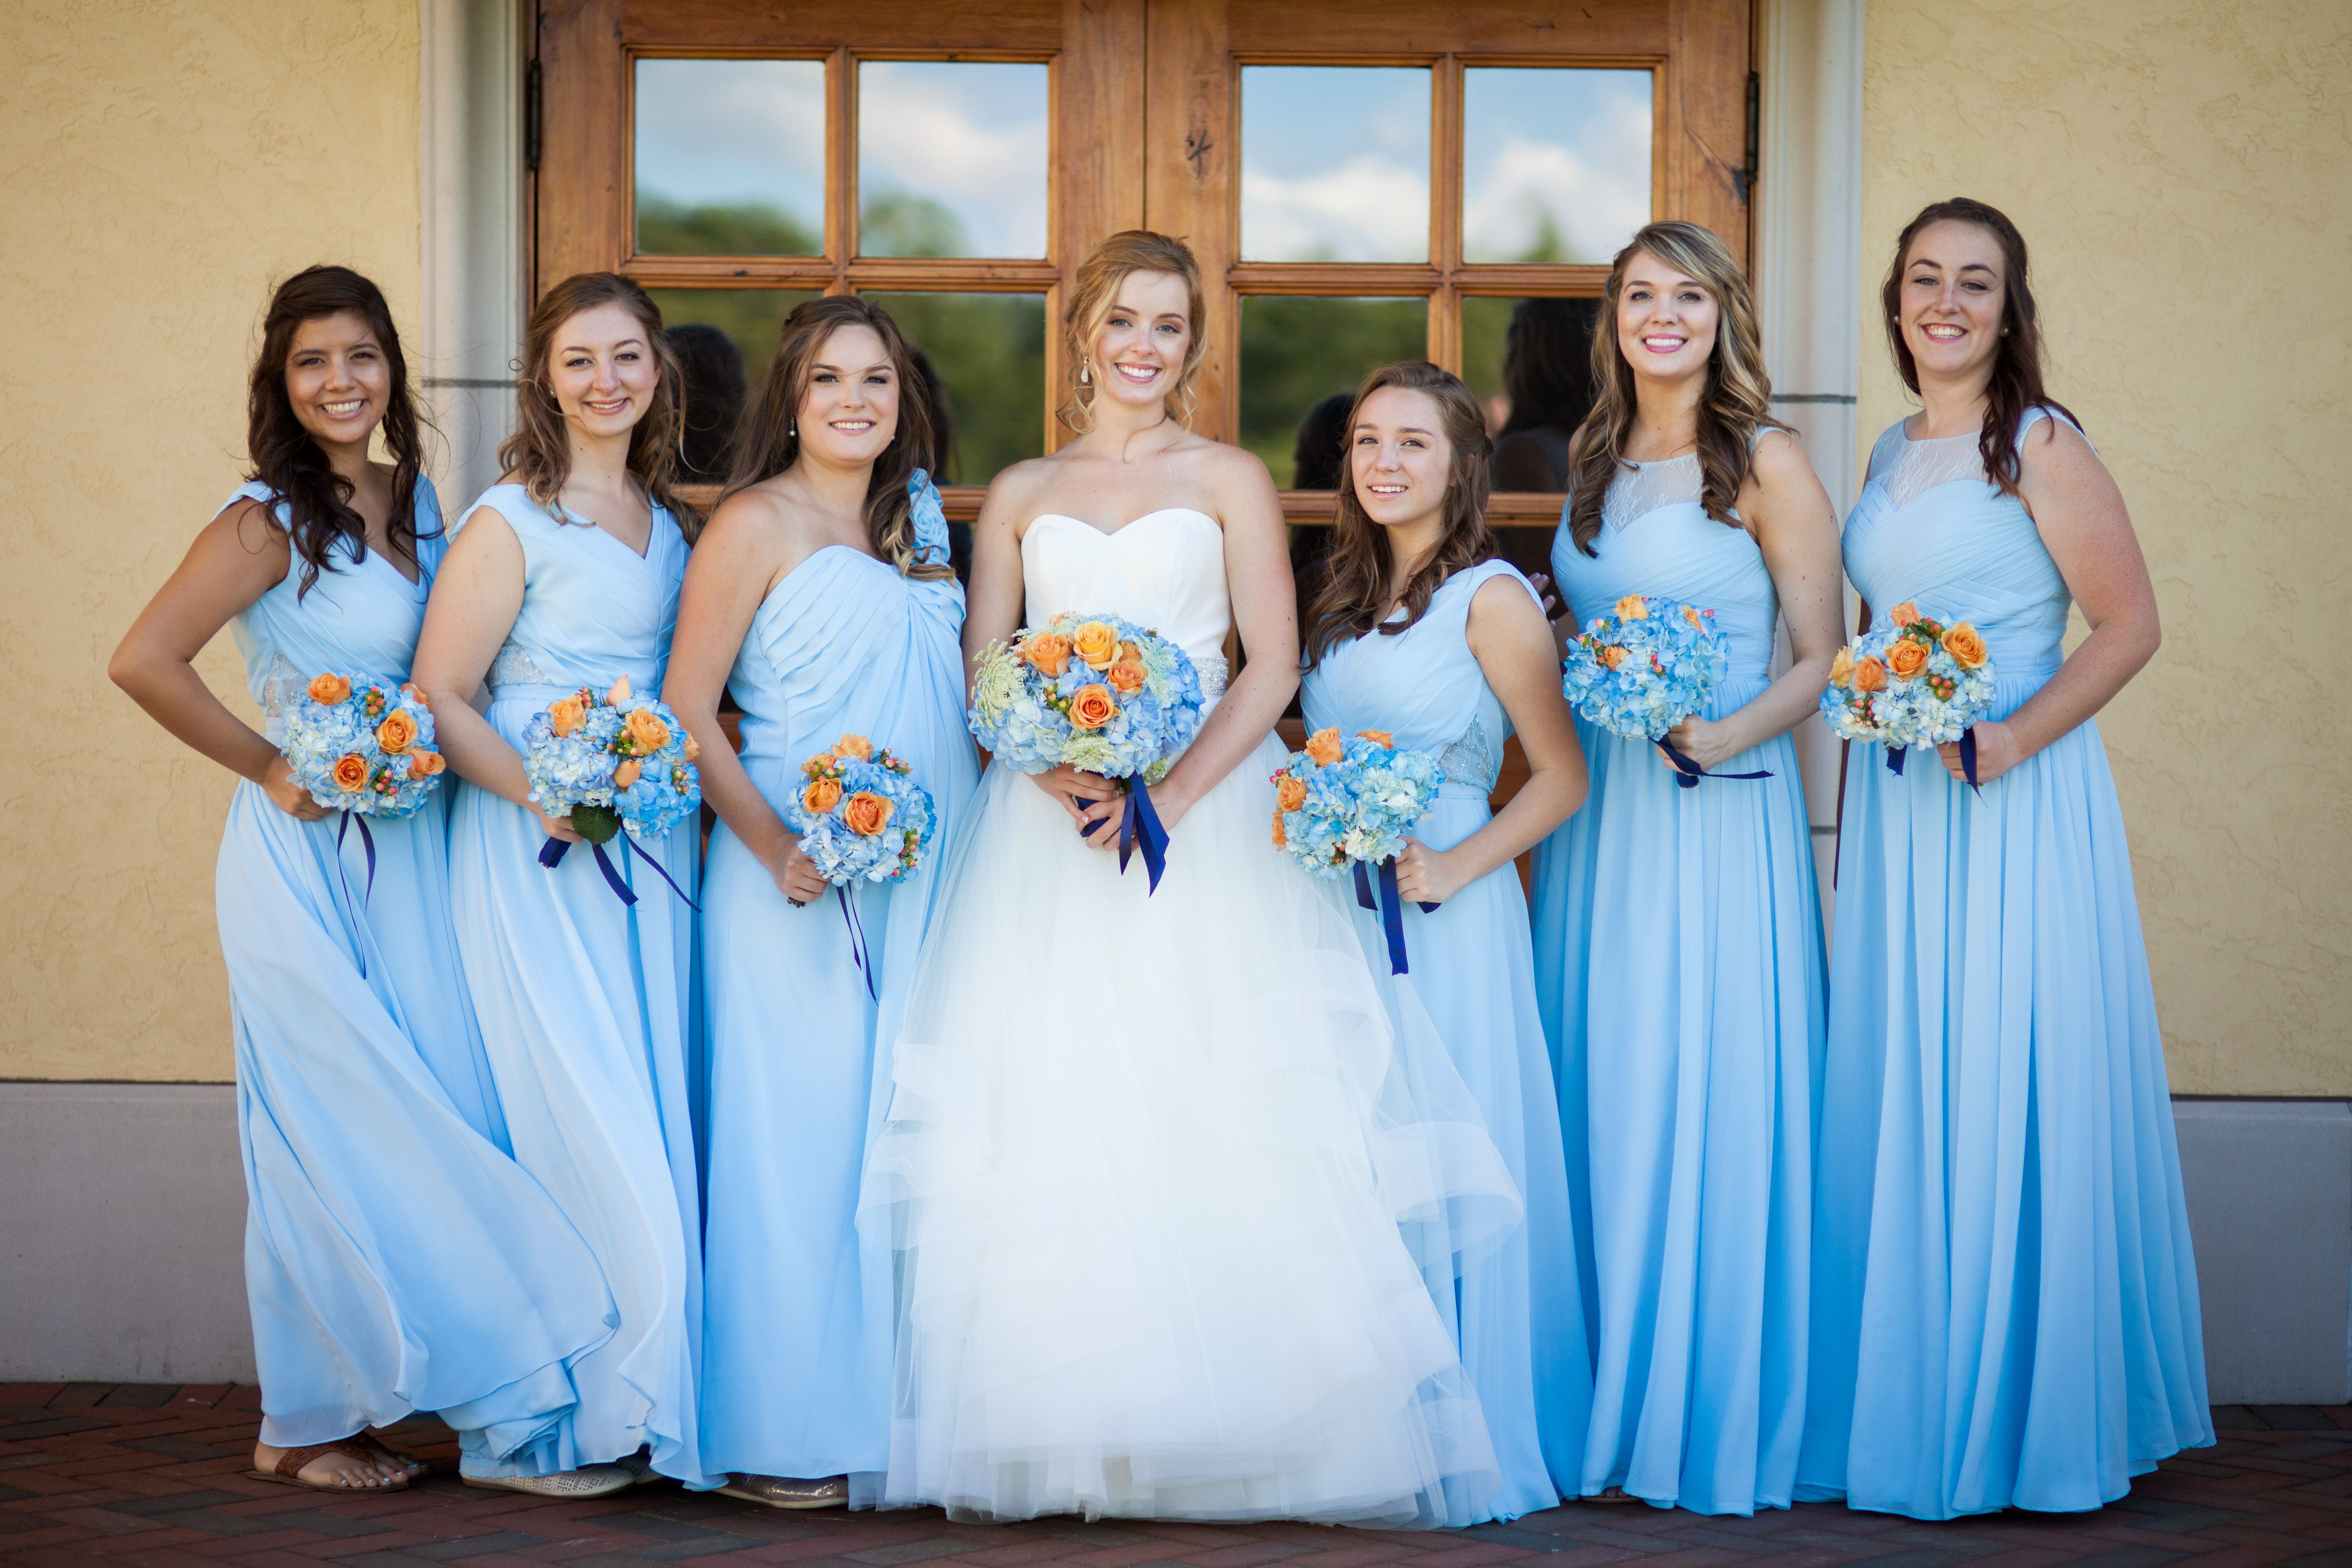 are worst forever light absolute scarnici bridesmaid getty joe dresses should reasons articles be banned the and entertainment lighting blue images